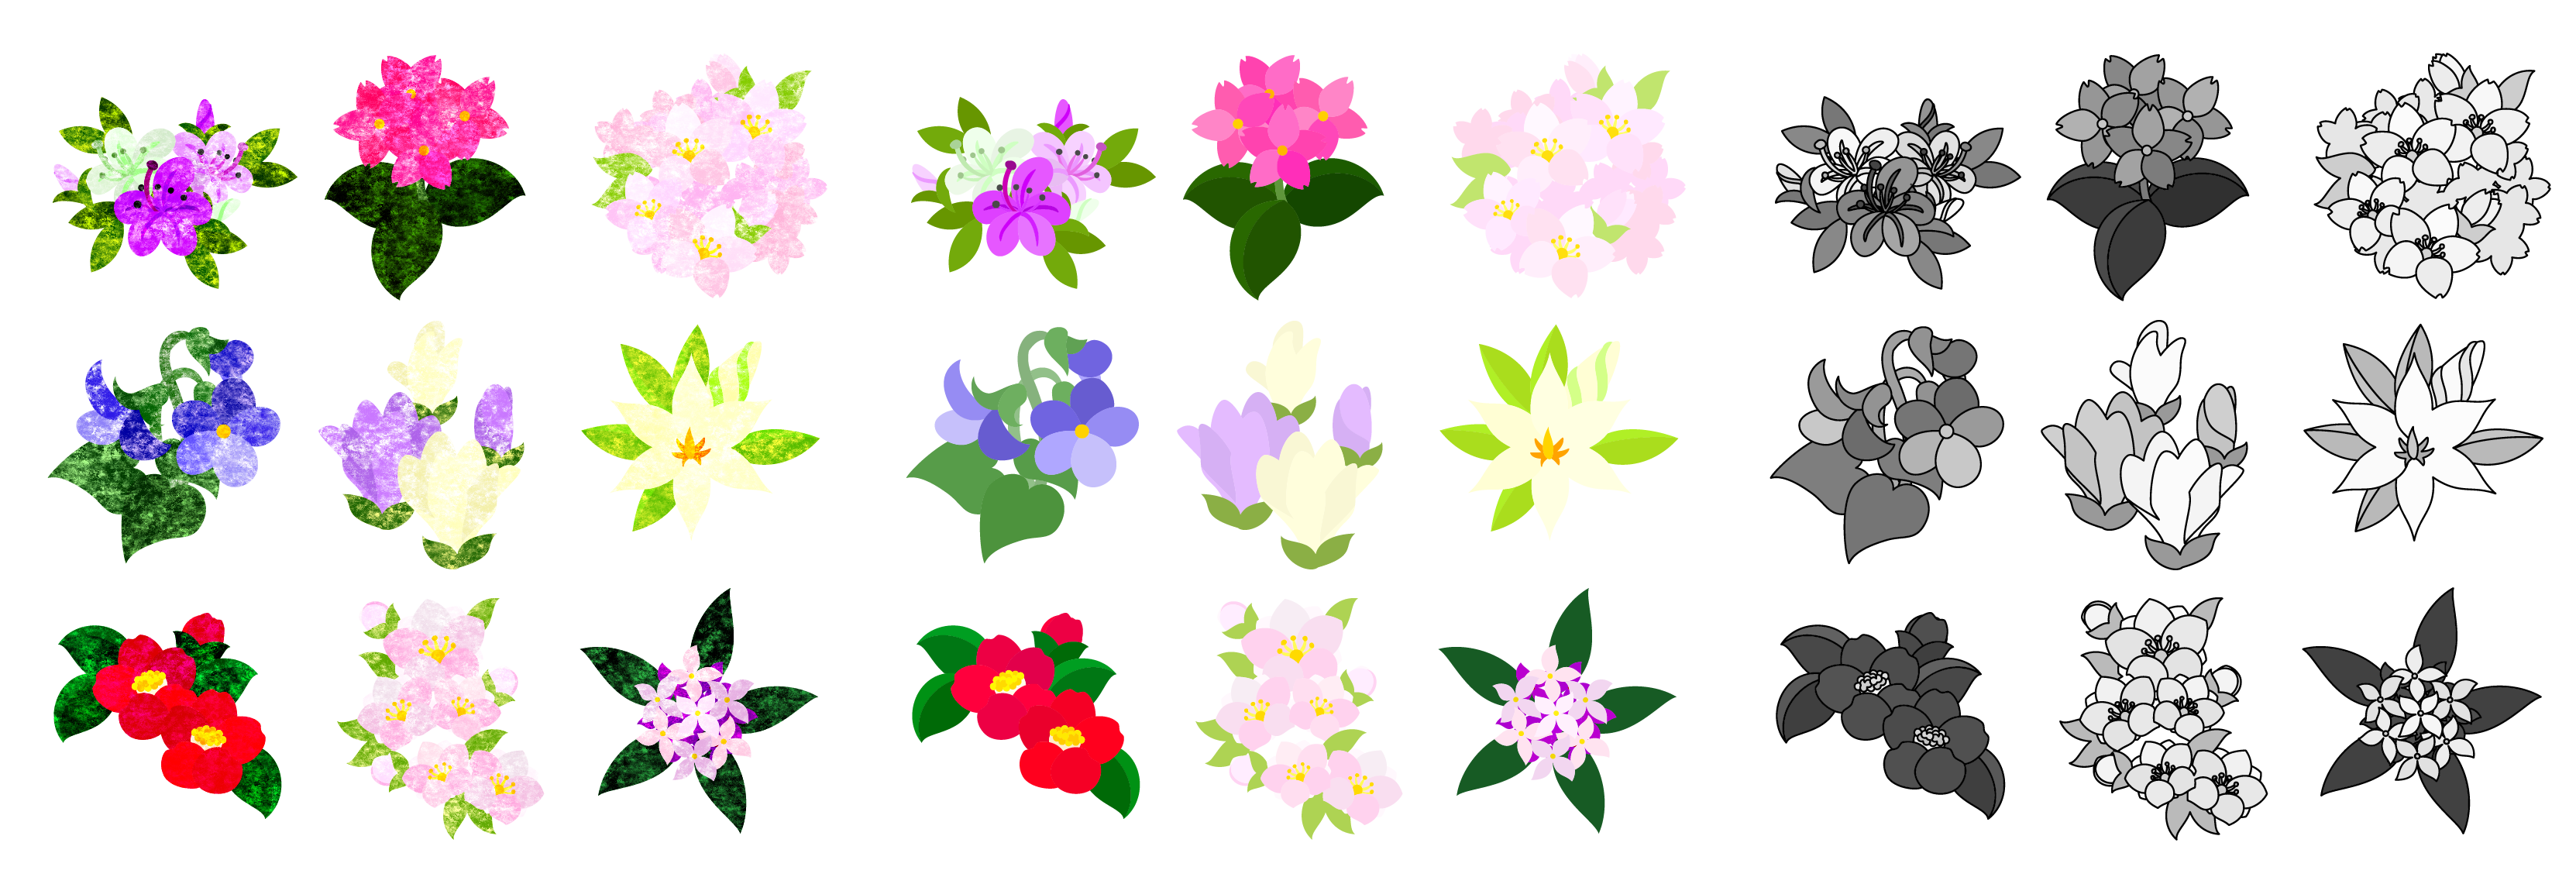 cute flower icon png by atelierbw on deviantart